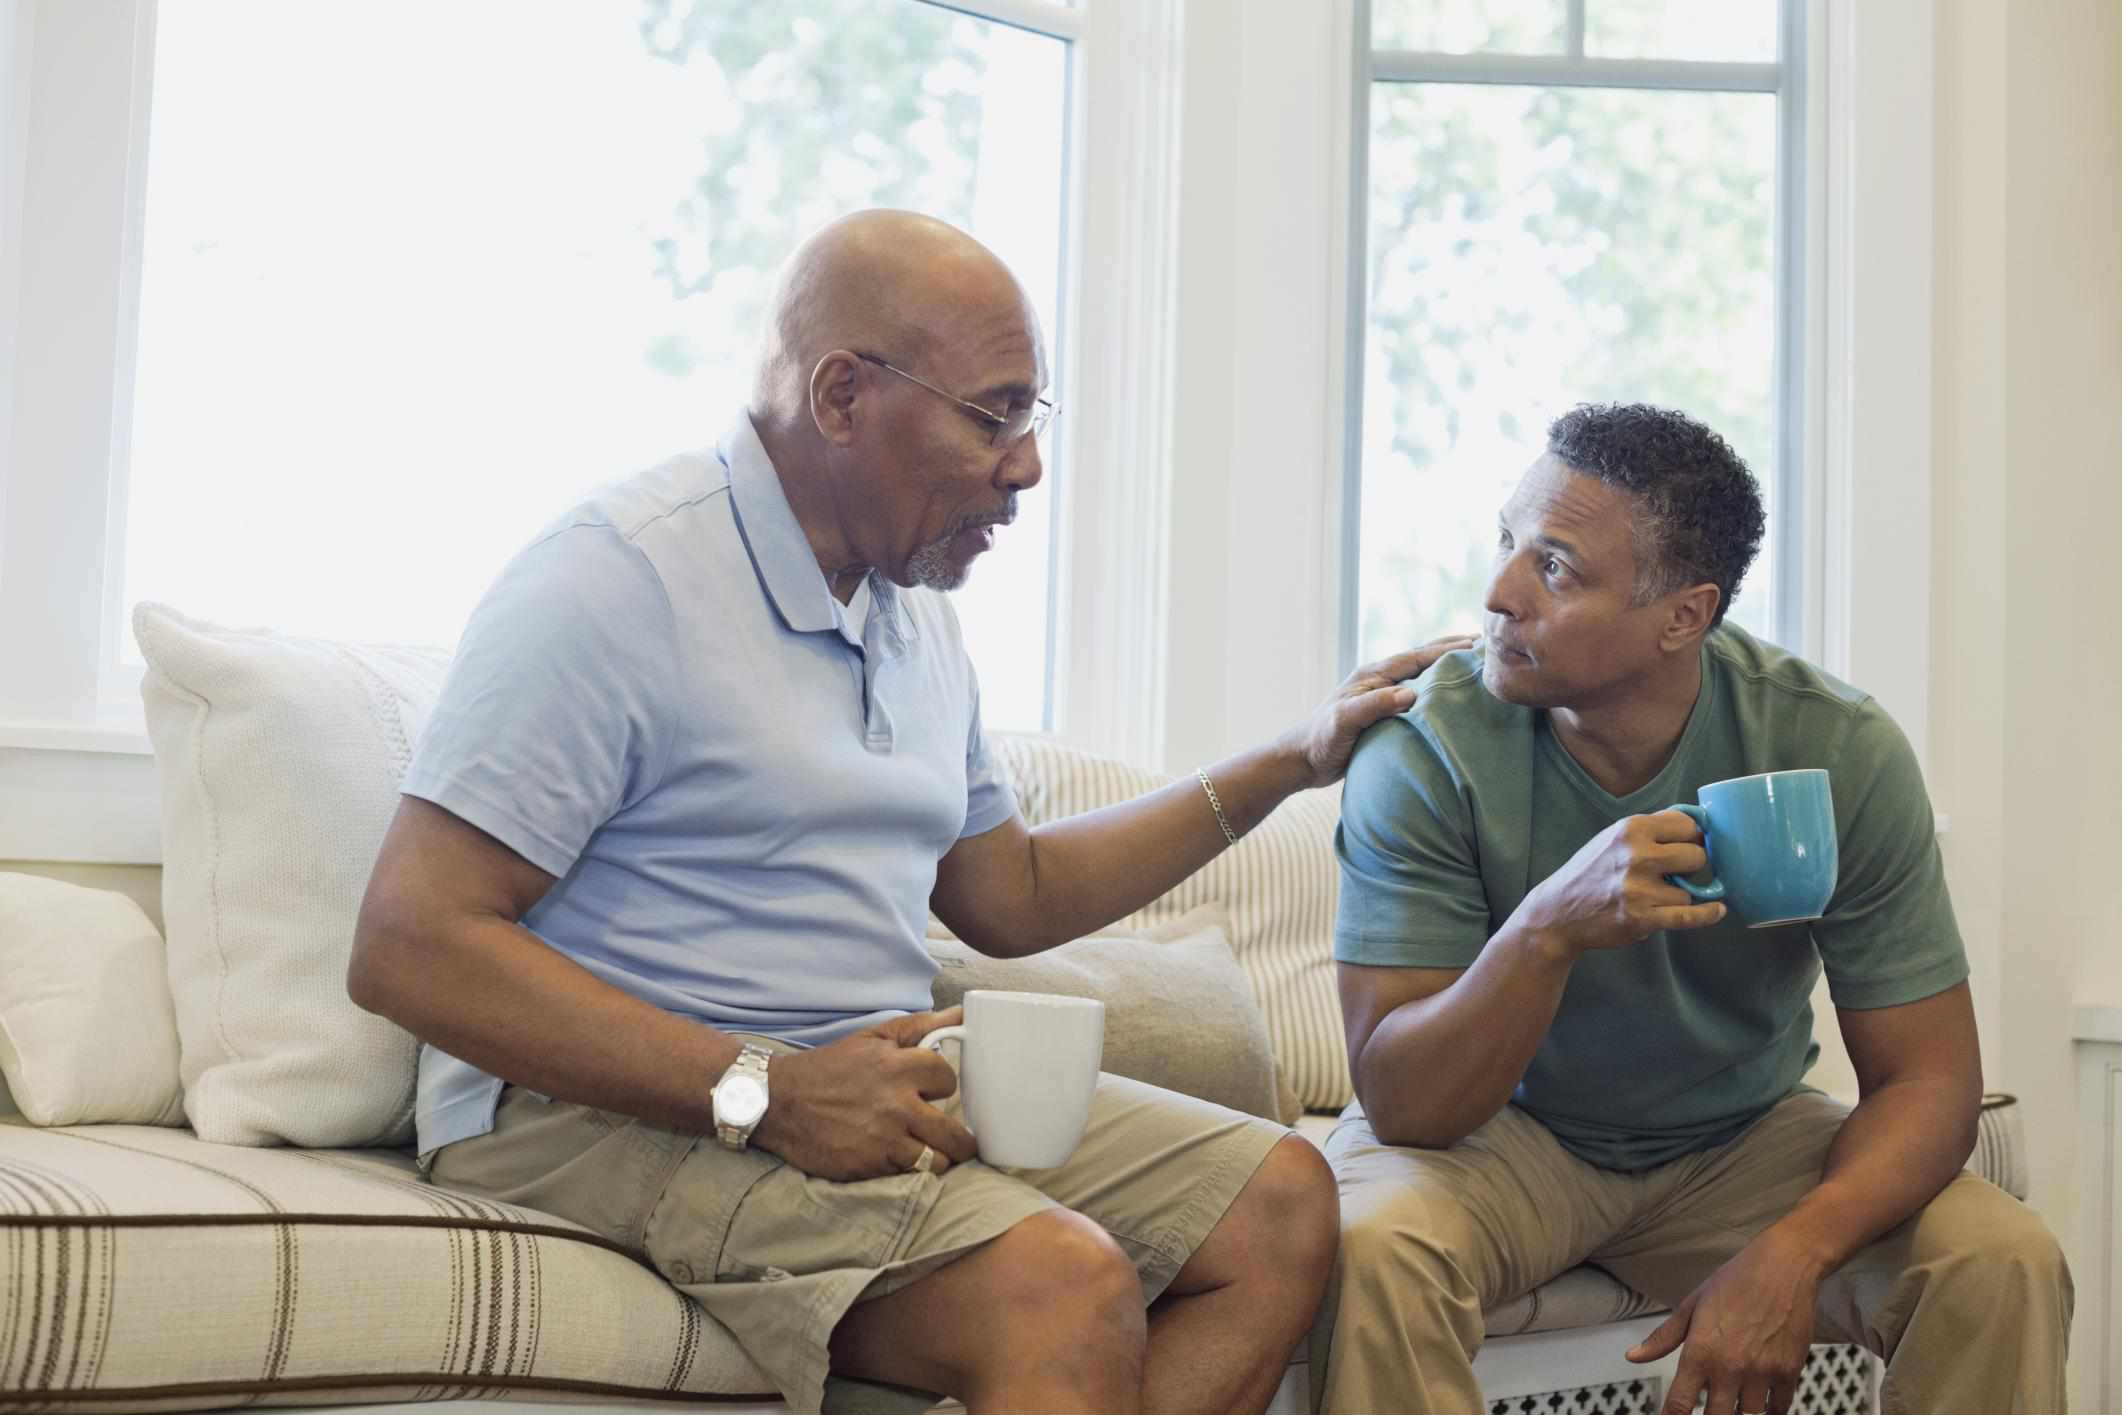 Senior father and adult son talking while having coffee